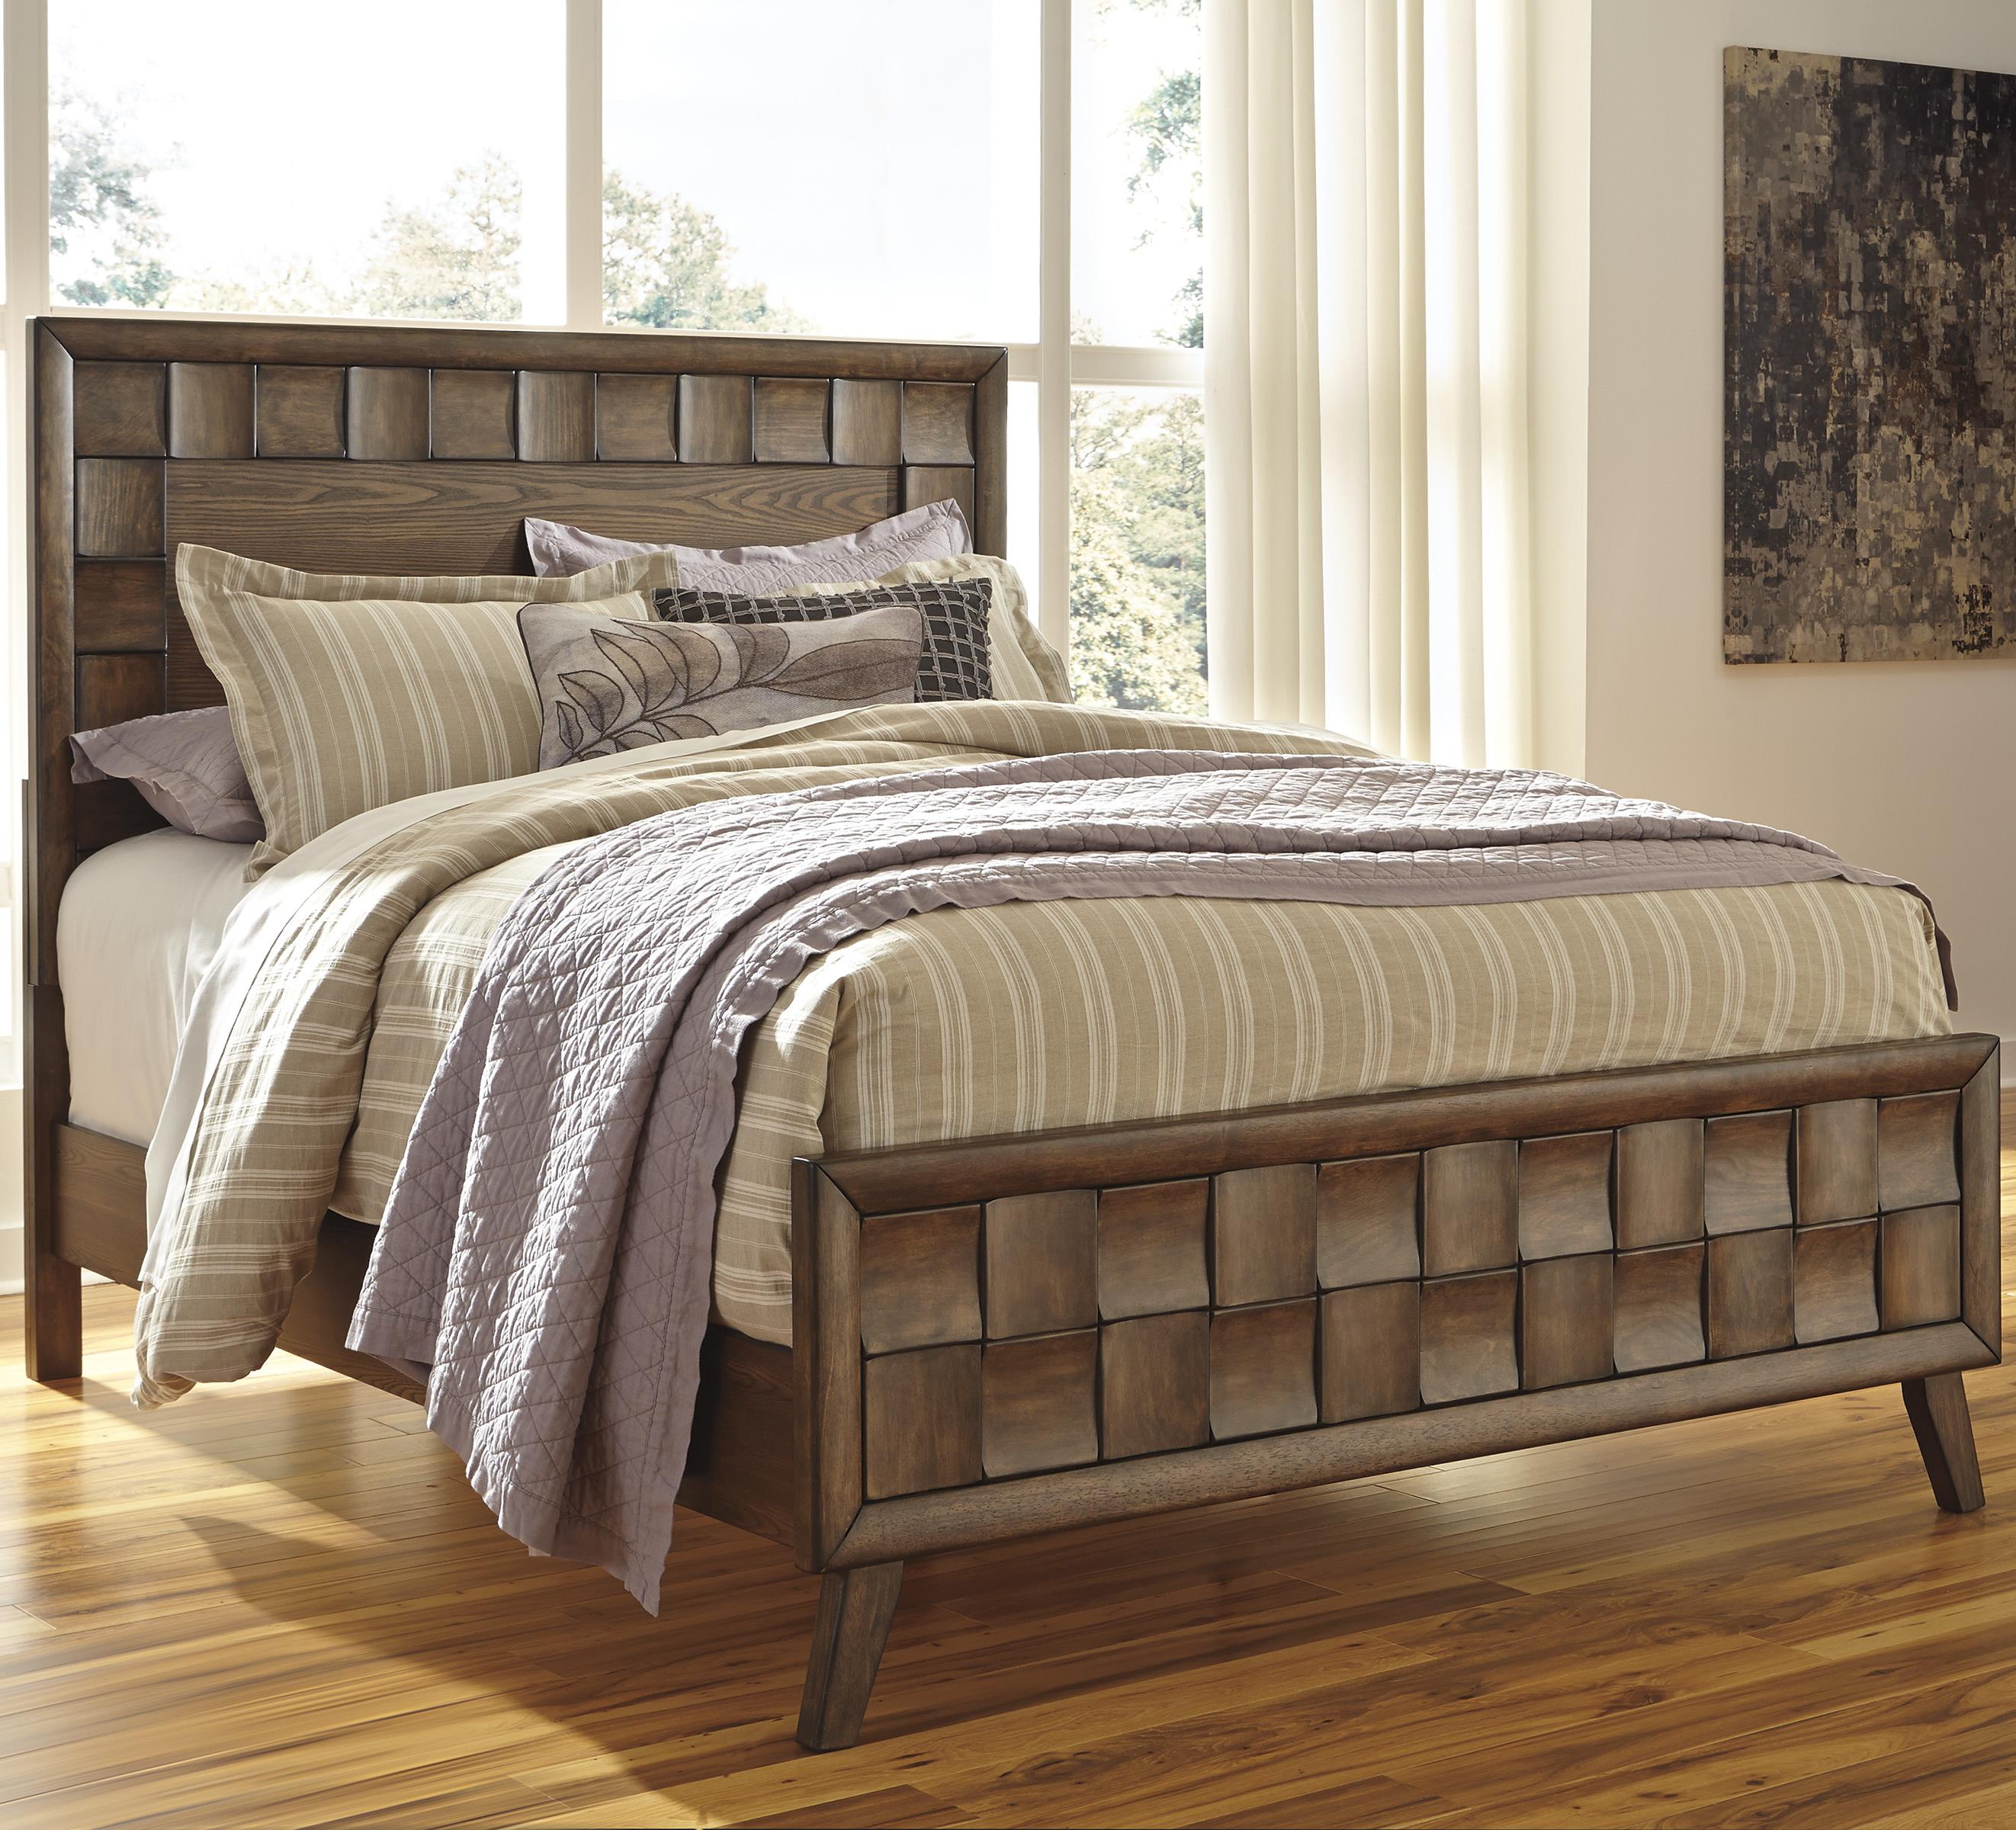 Signature Design by Ashley Debeaux King Wood Panel Bed - Item Number: B535-58+56+97